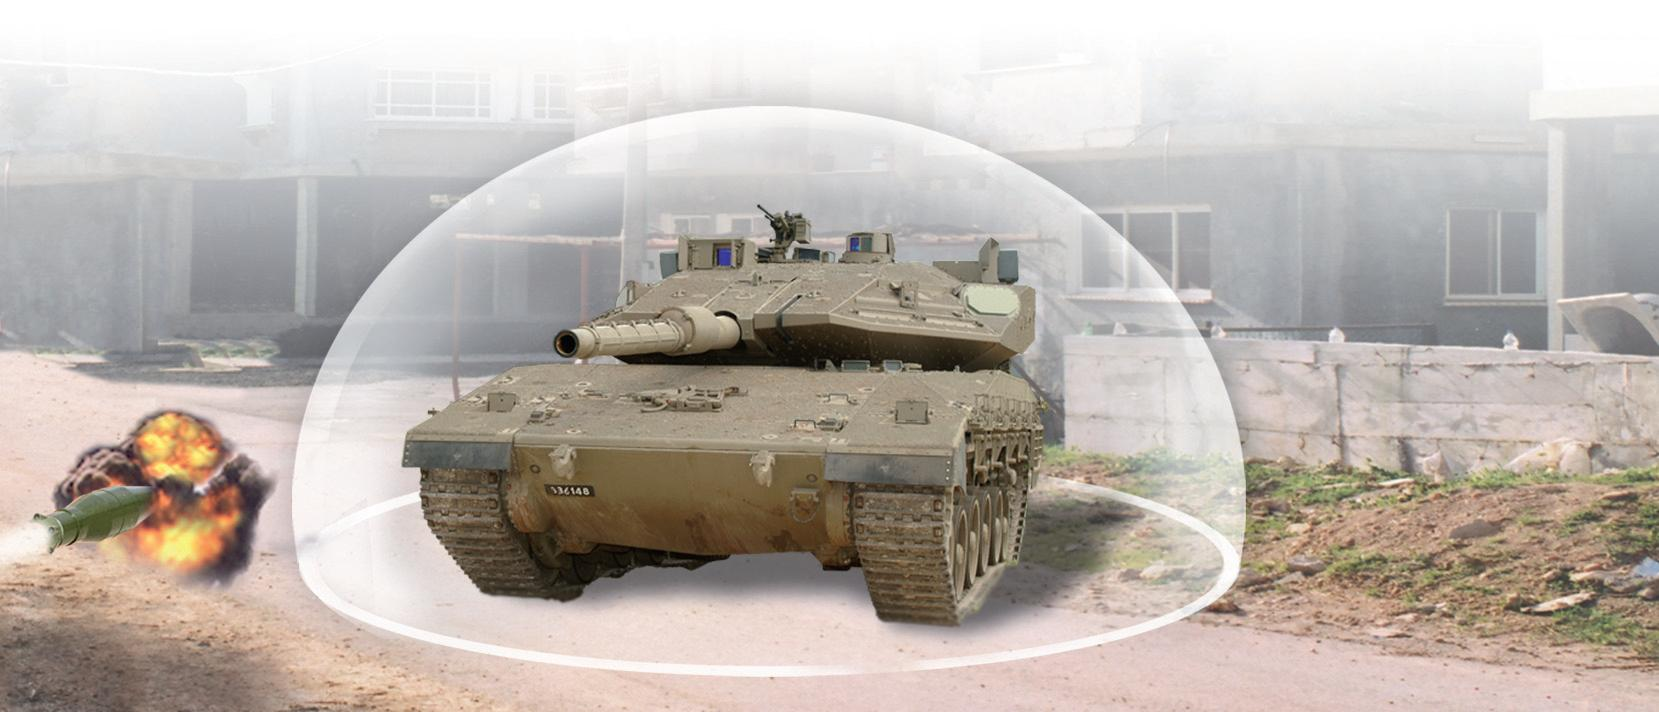 A graphic showing the Trophy active protection system for ground vehicles. Israel Defense Forces image.